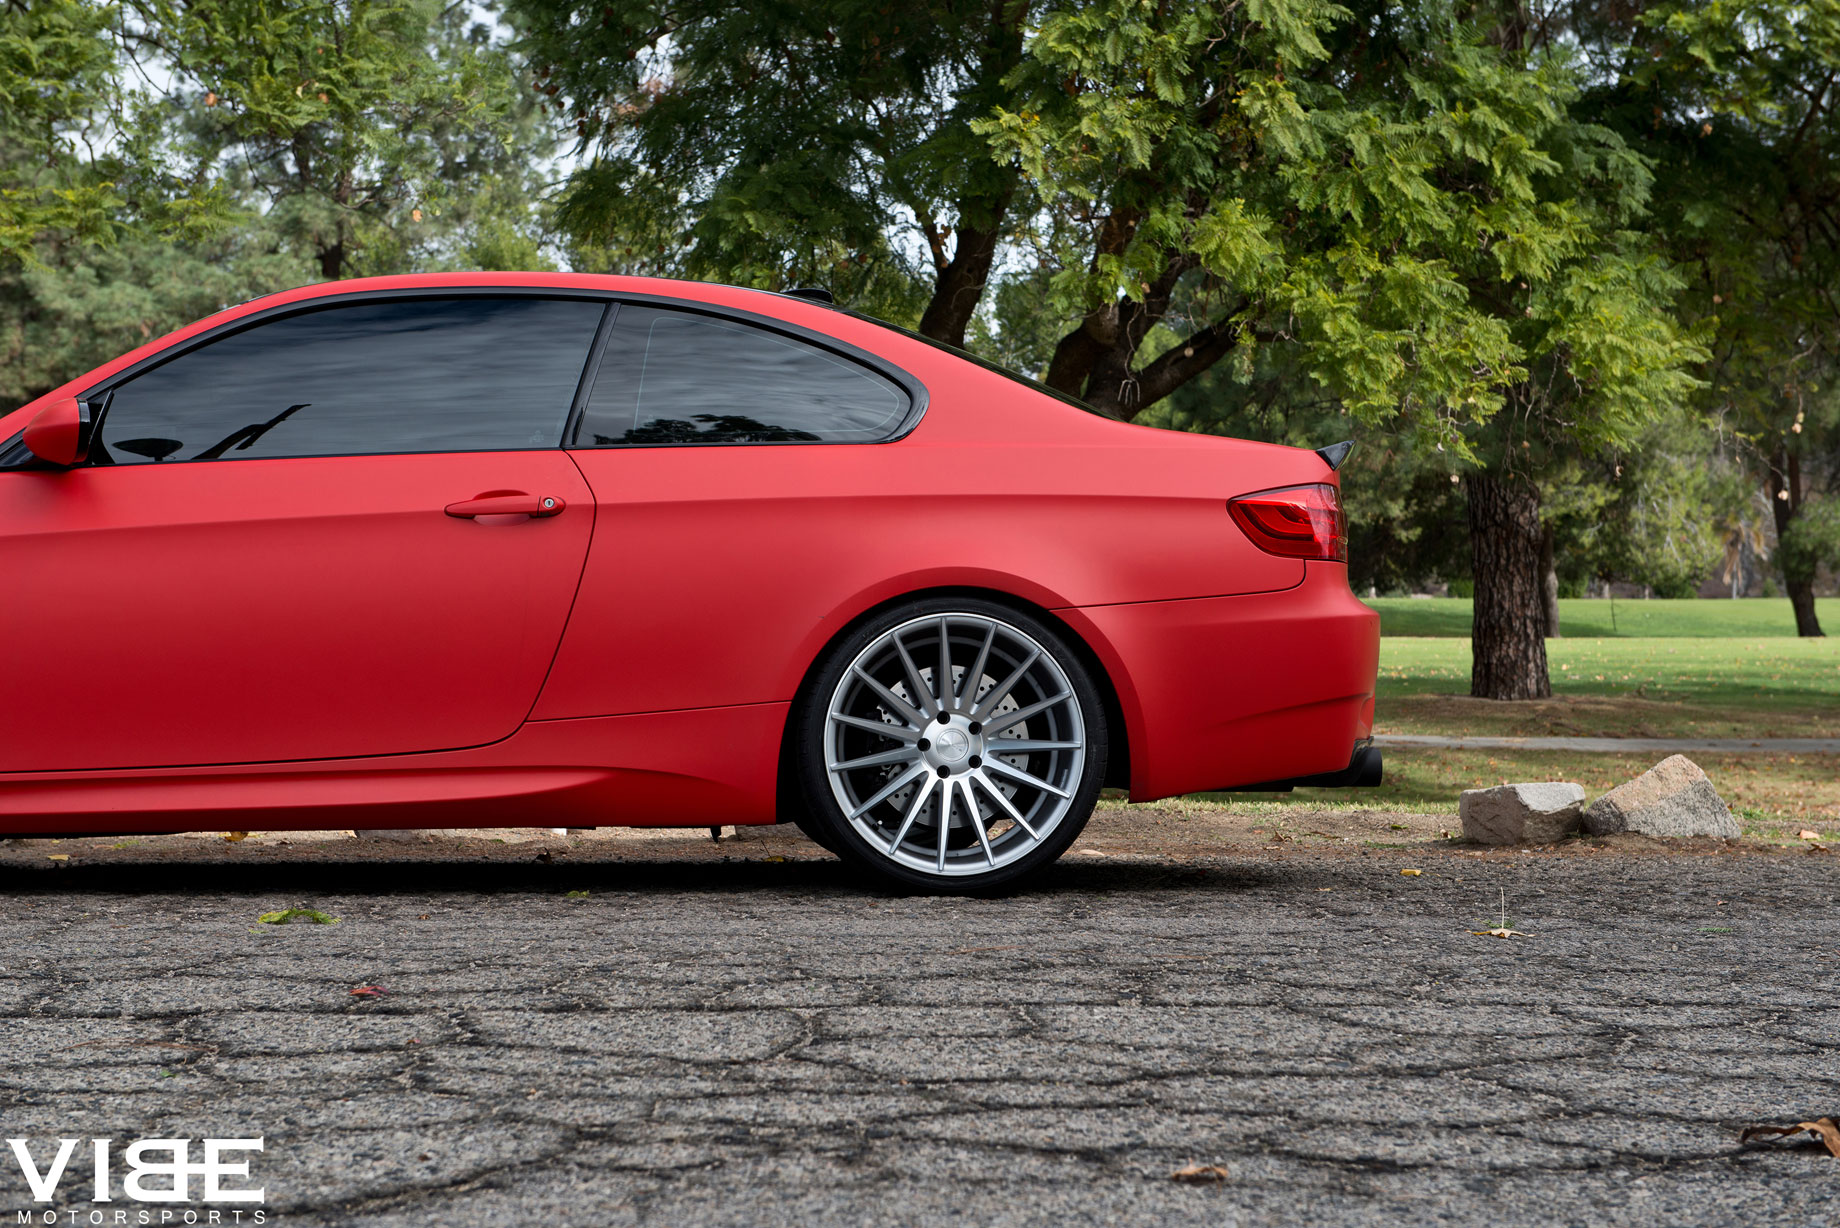 Stance Wheels SC-7 Silver on Red BMW M3